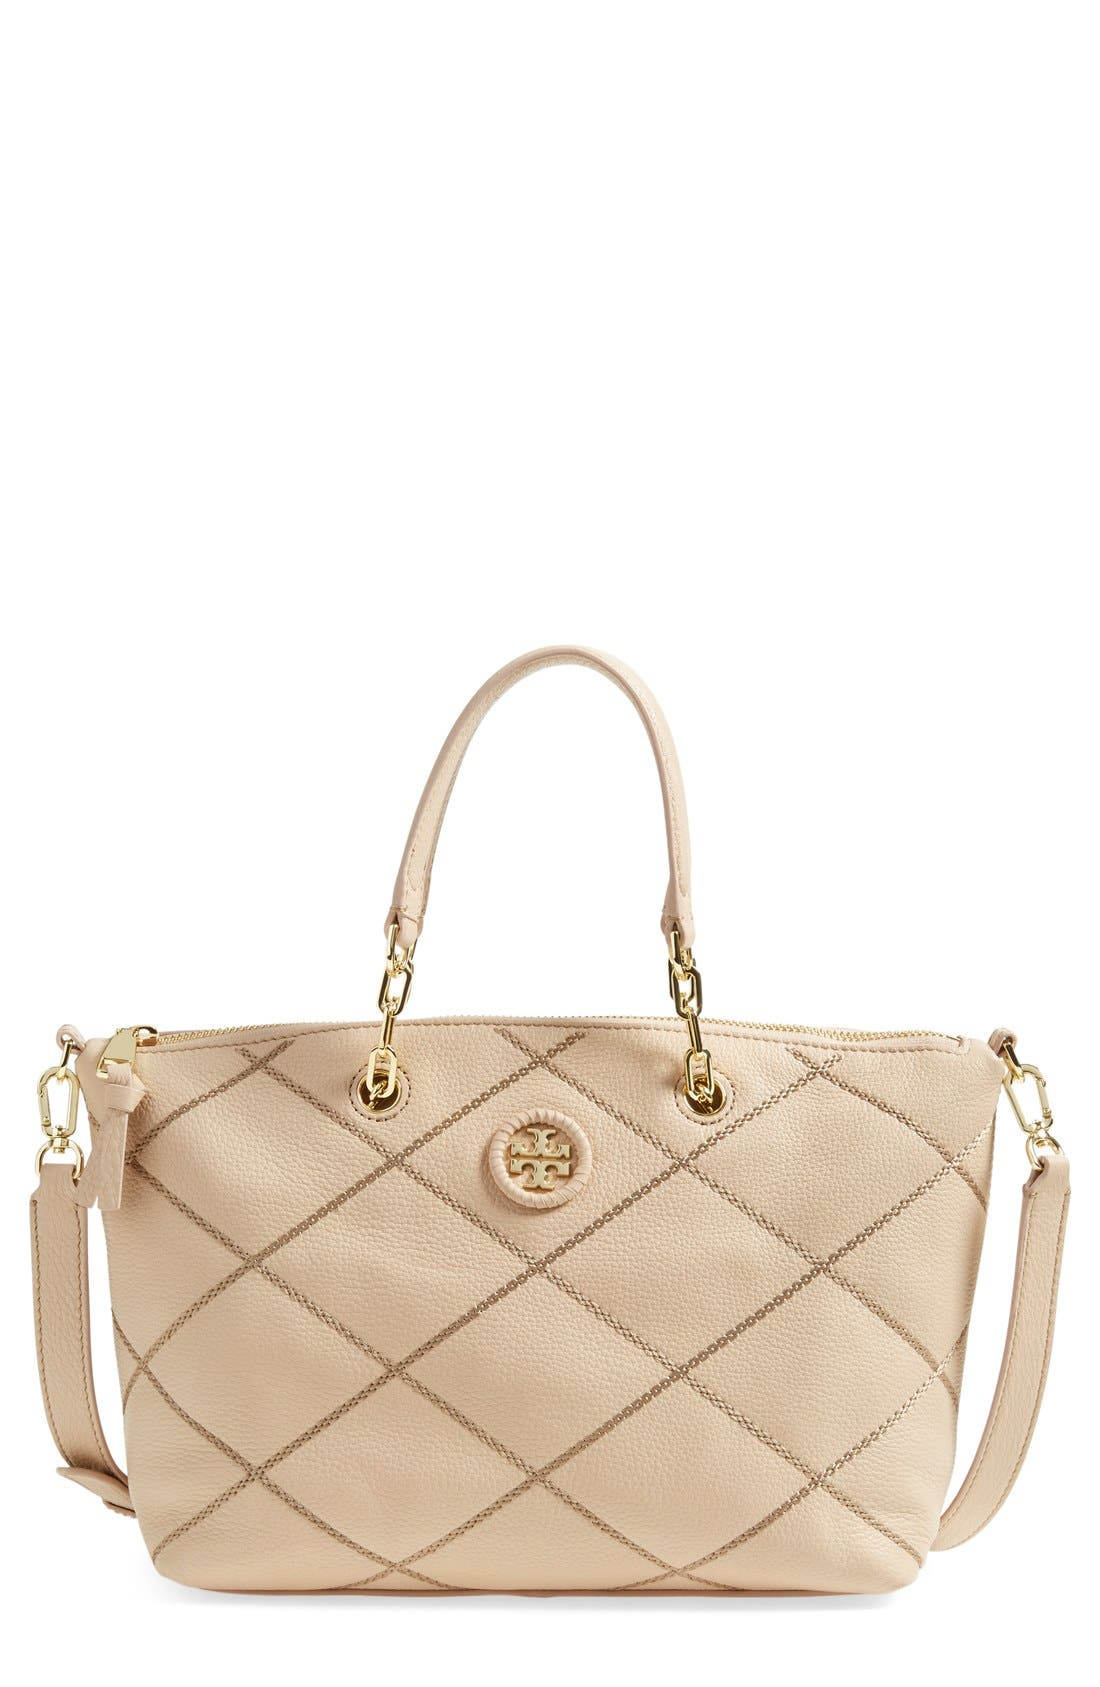 Alternate Image 1 Selected - Tory Burch 'Small Stitch' Leather Satchel (Nordstrom Exclusive)